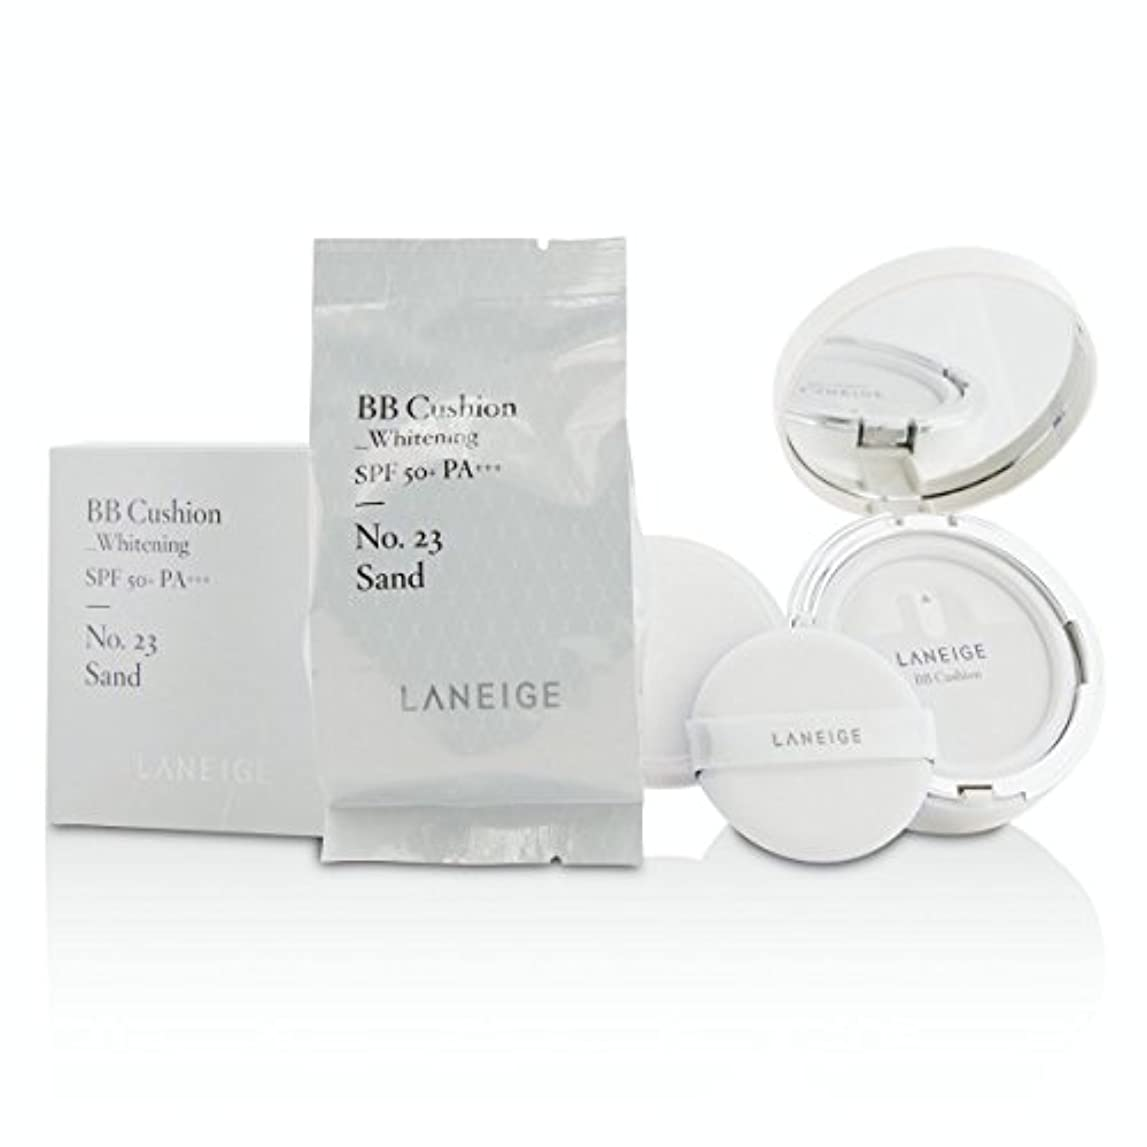 [Laneige] BB Cushion Foundation (Whitening) SPF 50 With Extra Refill - # No. 23 Sand 2x15g/0.5oz